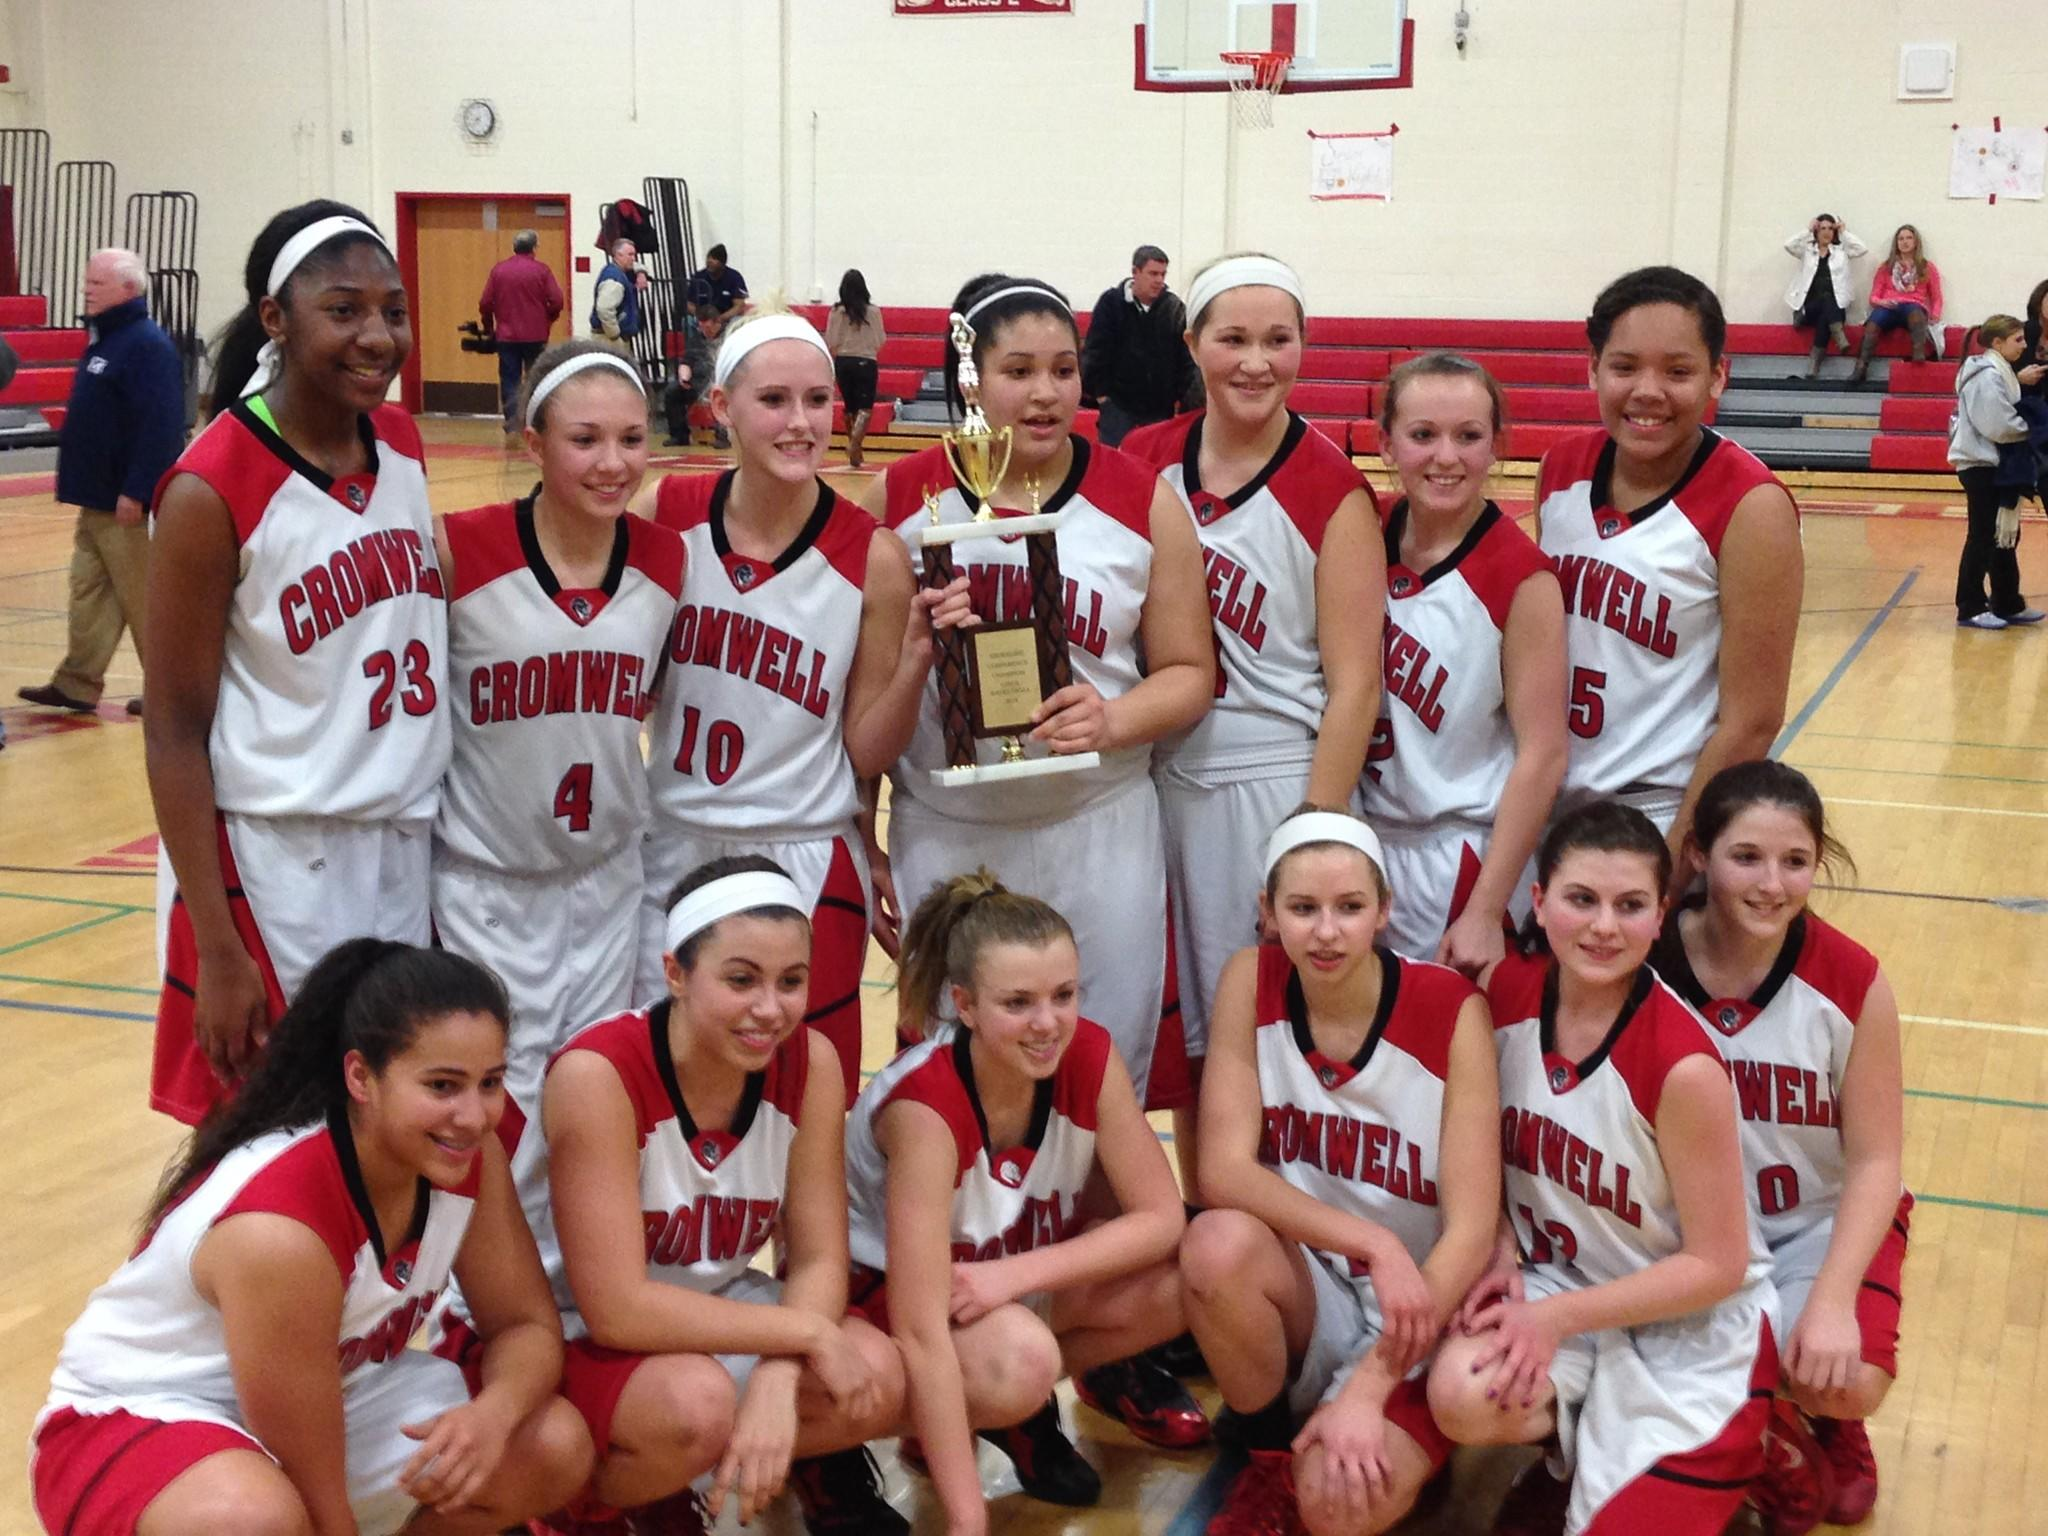 Cromwell poses with the trophy after winning the Shoreline Conference girls basketball tournament.